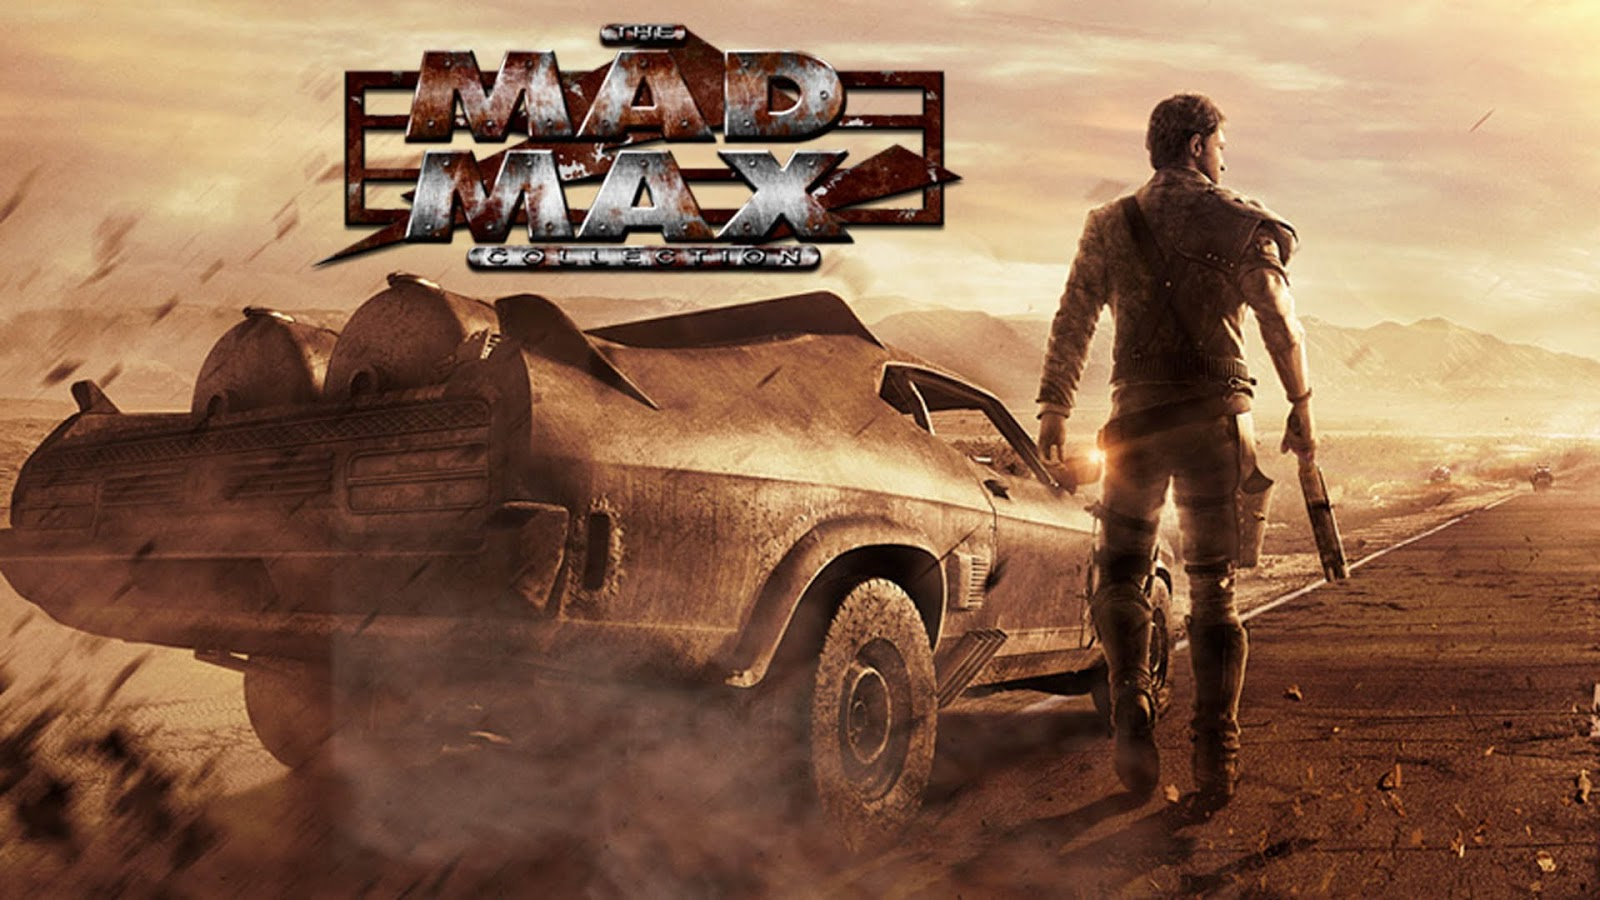 FREE DOWNLOAD <b>MAD MAX</b> [PC,PS4,XBOX ]-<b>CHEATS</b> HACK